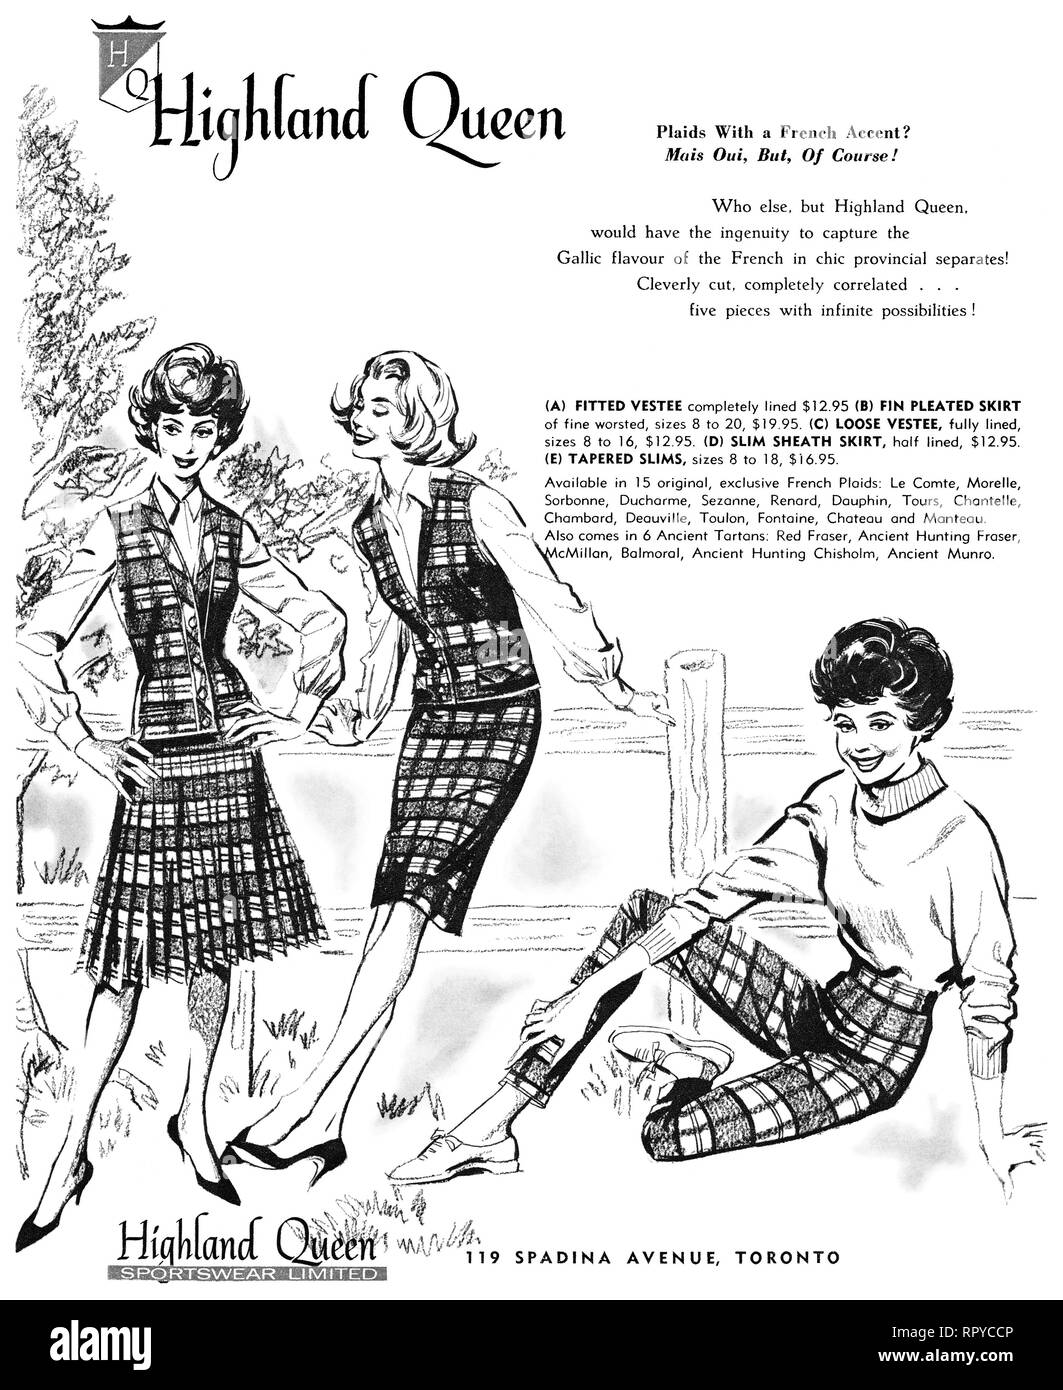 1959 Canadian advertisement for Highland Queen women's fashions. - Stock Image